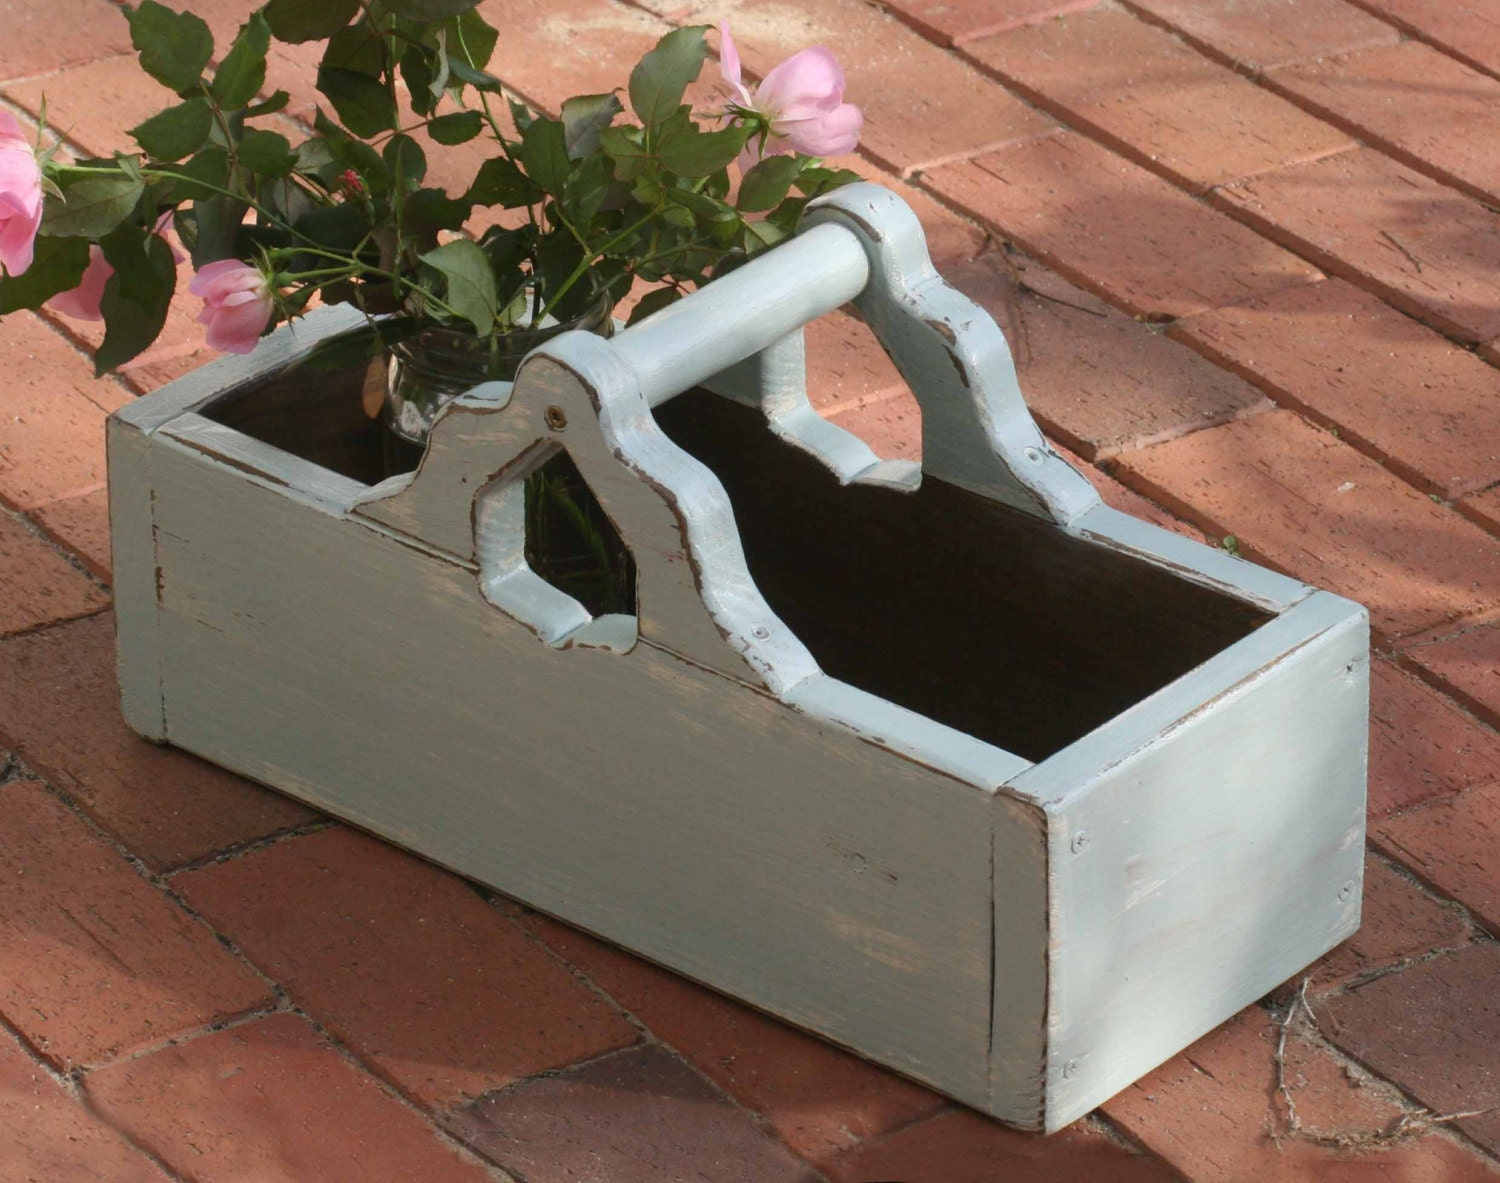 wooden garden tray entertaining serving tray caddy tote